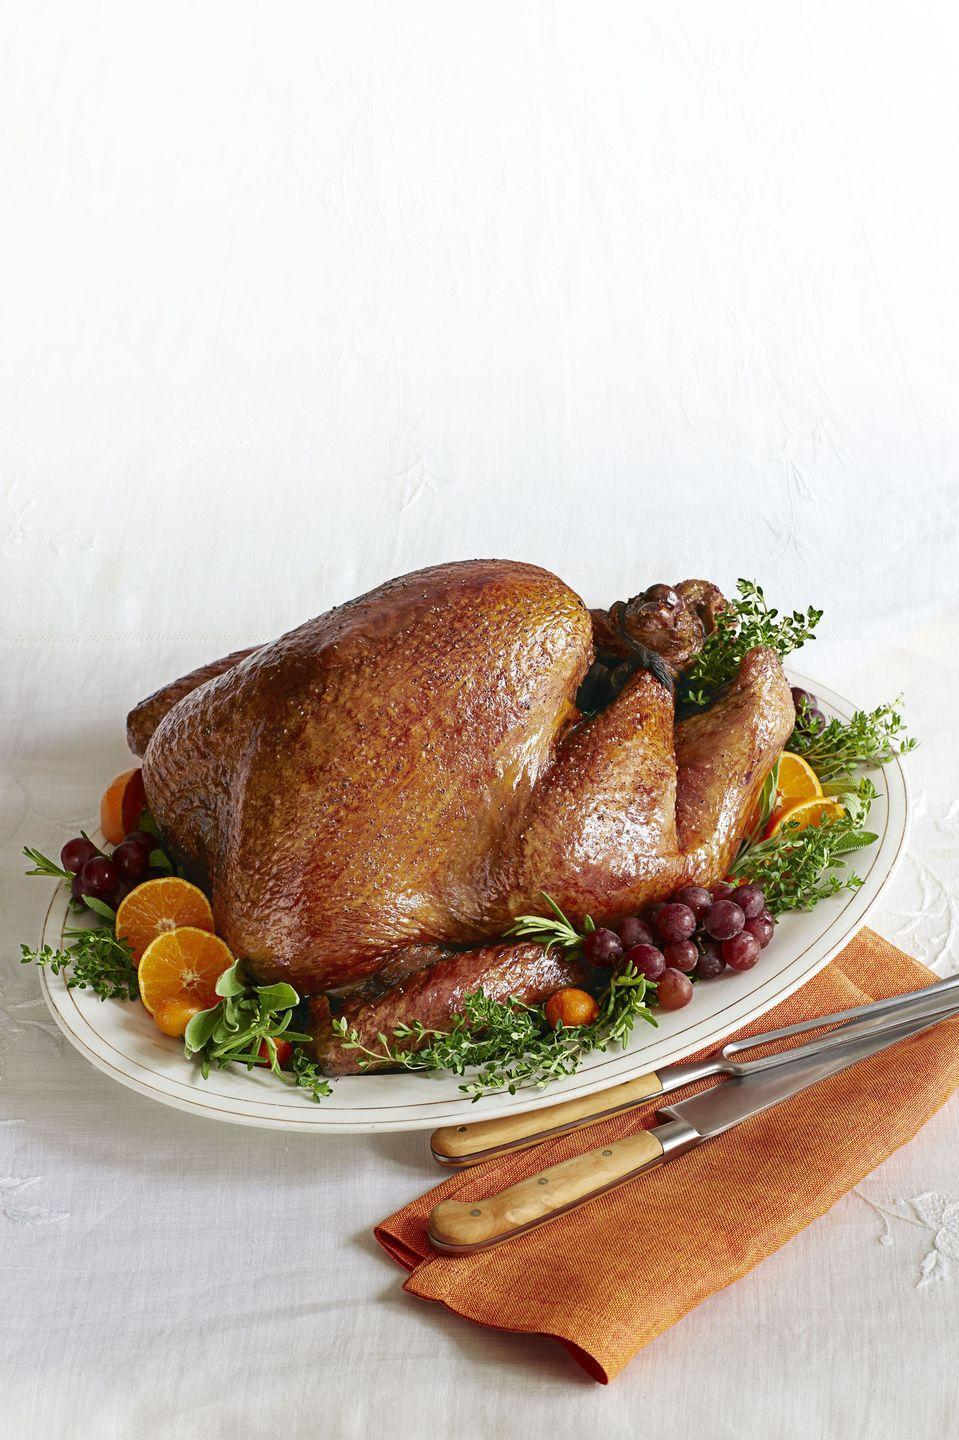 "<p>Here's the moment you'e all been waiting for: <a href=""https://www.goodhousekeeping.com/holidays/thanksgiving-ideas/g4689/thanksgiving-turkey-recipes/"" rel=""nofollow noopener"" target=""_blank"" data-ylk=""slk:the drool-worthy turkey recipe"" class=""link rapid-noclick-resp"">the drool-worthy turkey recipe</a>. Remember: Ina knows best.</p><p><em><a href=""https://www.goodhousekeeping.com/food-recipes/a15971/luscious-roast-turkey-recipe-ghk1113/"" rel=""nofollow noopener"" target=""_blank"" data-ylk=""slk:Get the recipe for Luscious Roast Turkey »"" class=""link rapid-noclick-resp"">Get the recipe for Luscious Roast Turkey »</a></em></p><p><strong>RELATED: </strong><a href=""https://www.goodhousekeeping.com/holidays/thanksgiving-ideas/g1471/leftover-turkey-recipes/"" rel=""nofollow noopener"" target=""_blank"" data-ylk=""slk:28 Leftover Turkey Recipes You Can Make in 60 Minutes or Less"" class=""link rapid-noclick-resp"">28 Leftover Turkey Recipes You Can Make in 60 Minutes or Less</a></p>"